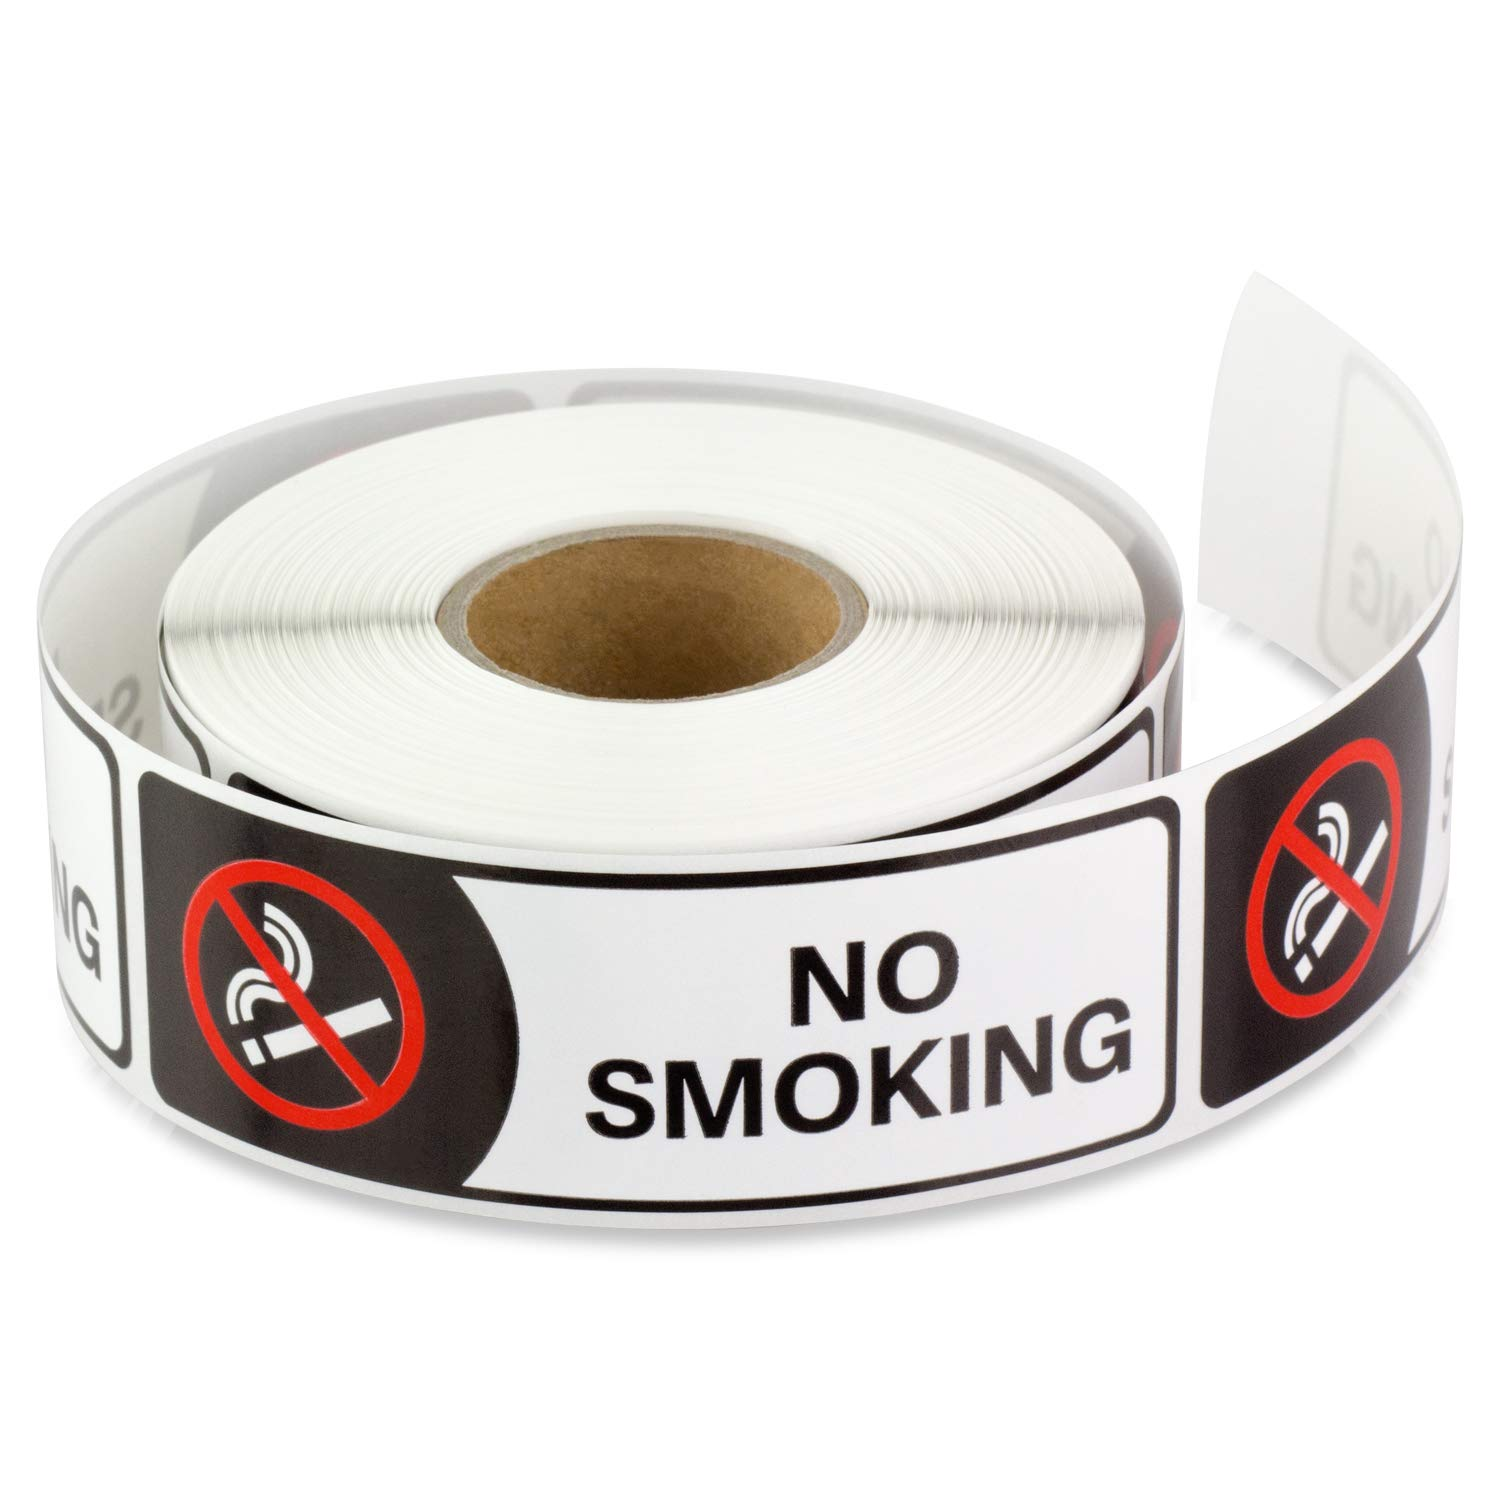 TUCO DEALS 3 x 1 Inch Rectangle - NO Smoking Warning Alert Stop Smoke No Cigarette Logo Safety Sign Window Door Wall Sticker Labels (Black/White, 2 Rolls Per Pack)